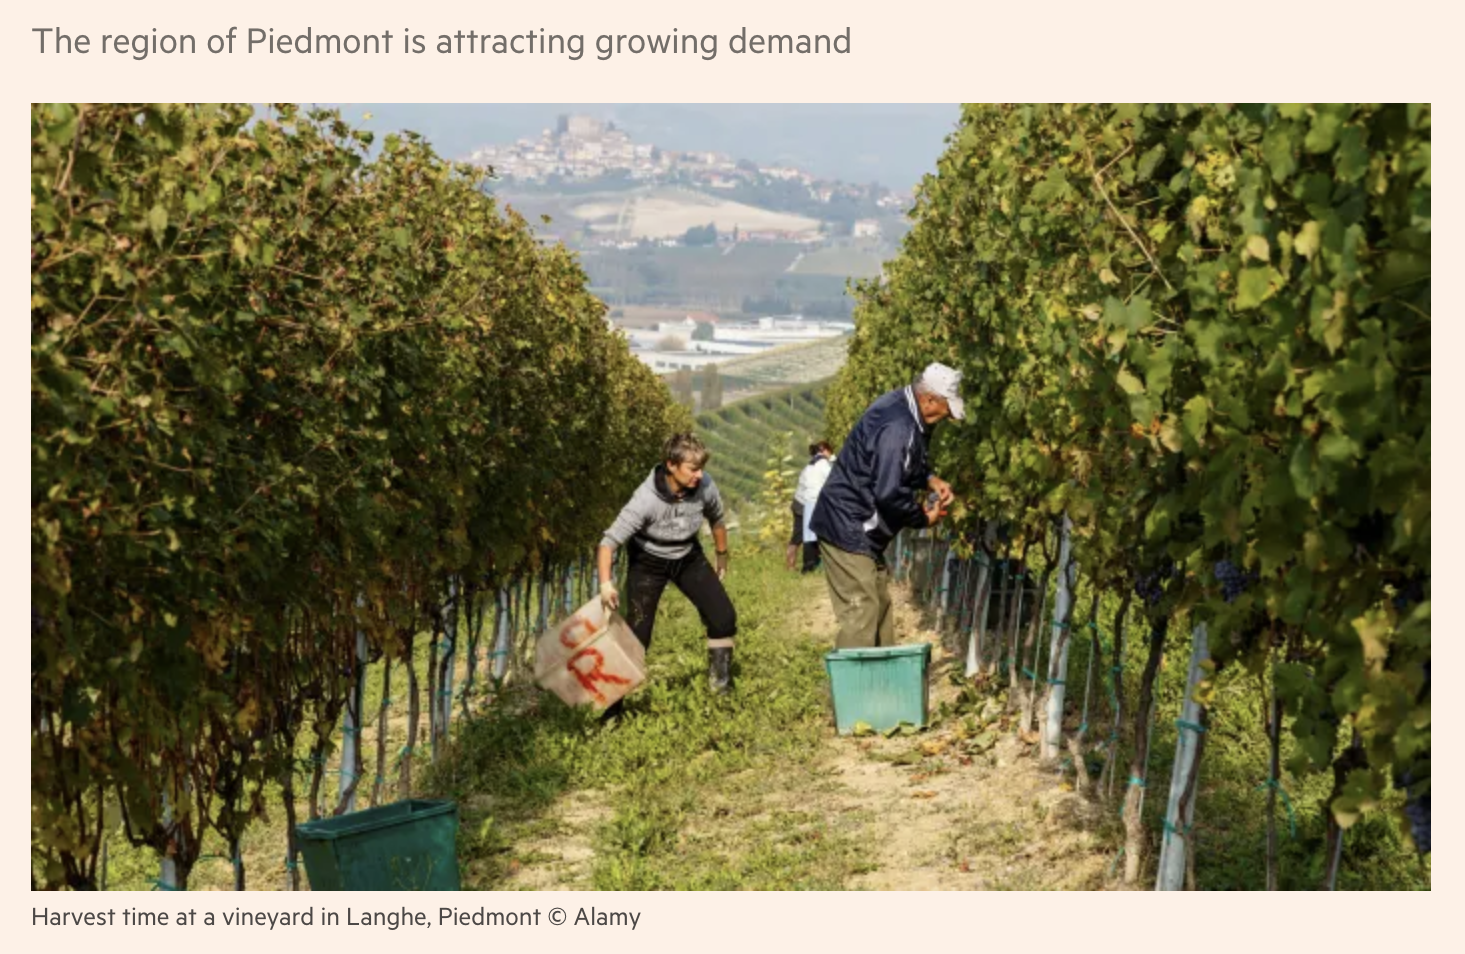 Financial Times - Italian wine investors return to ancient pedigrees